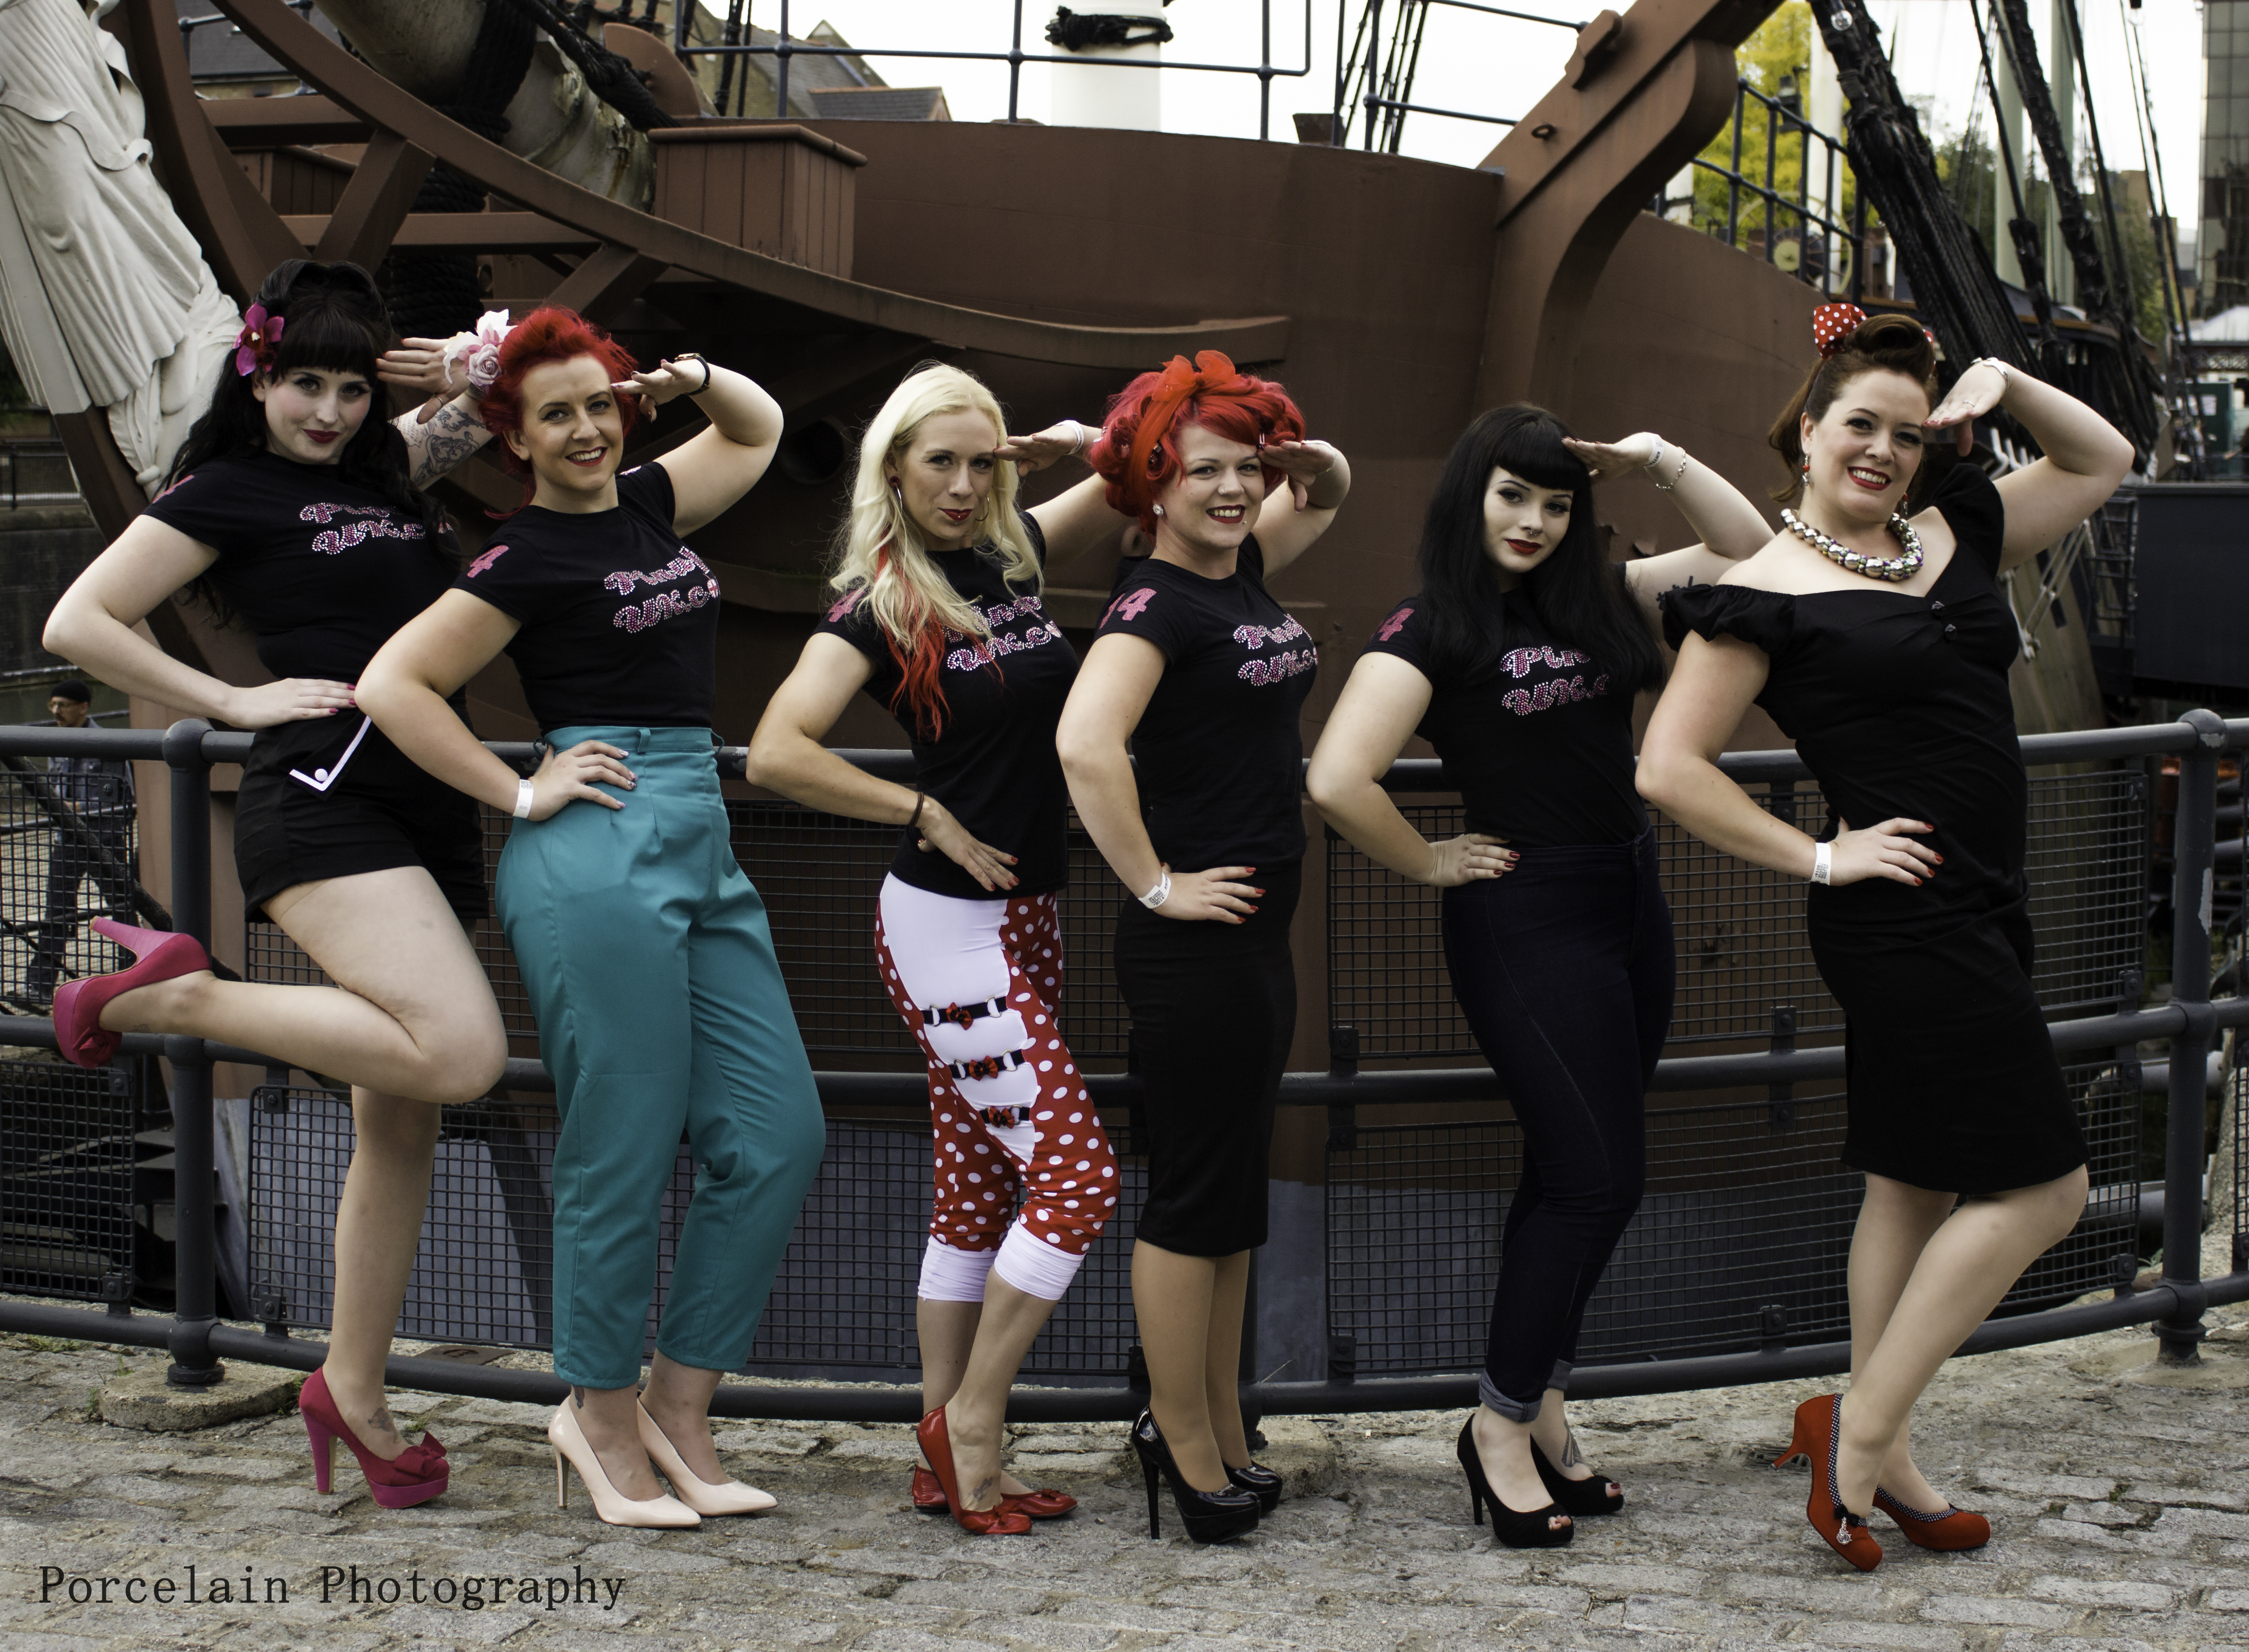 Miss Pinup UK Miss Pin Up UK The Old Stillage Pinup